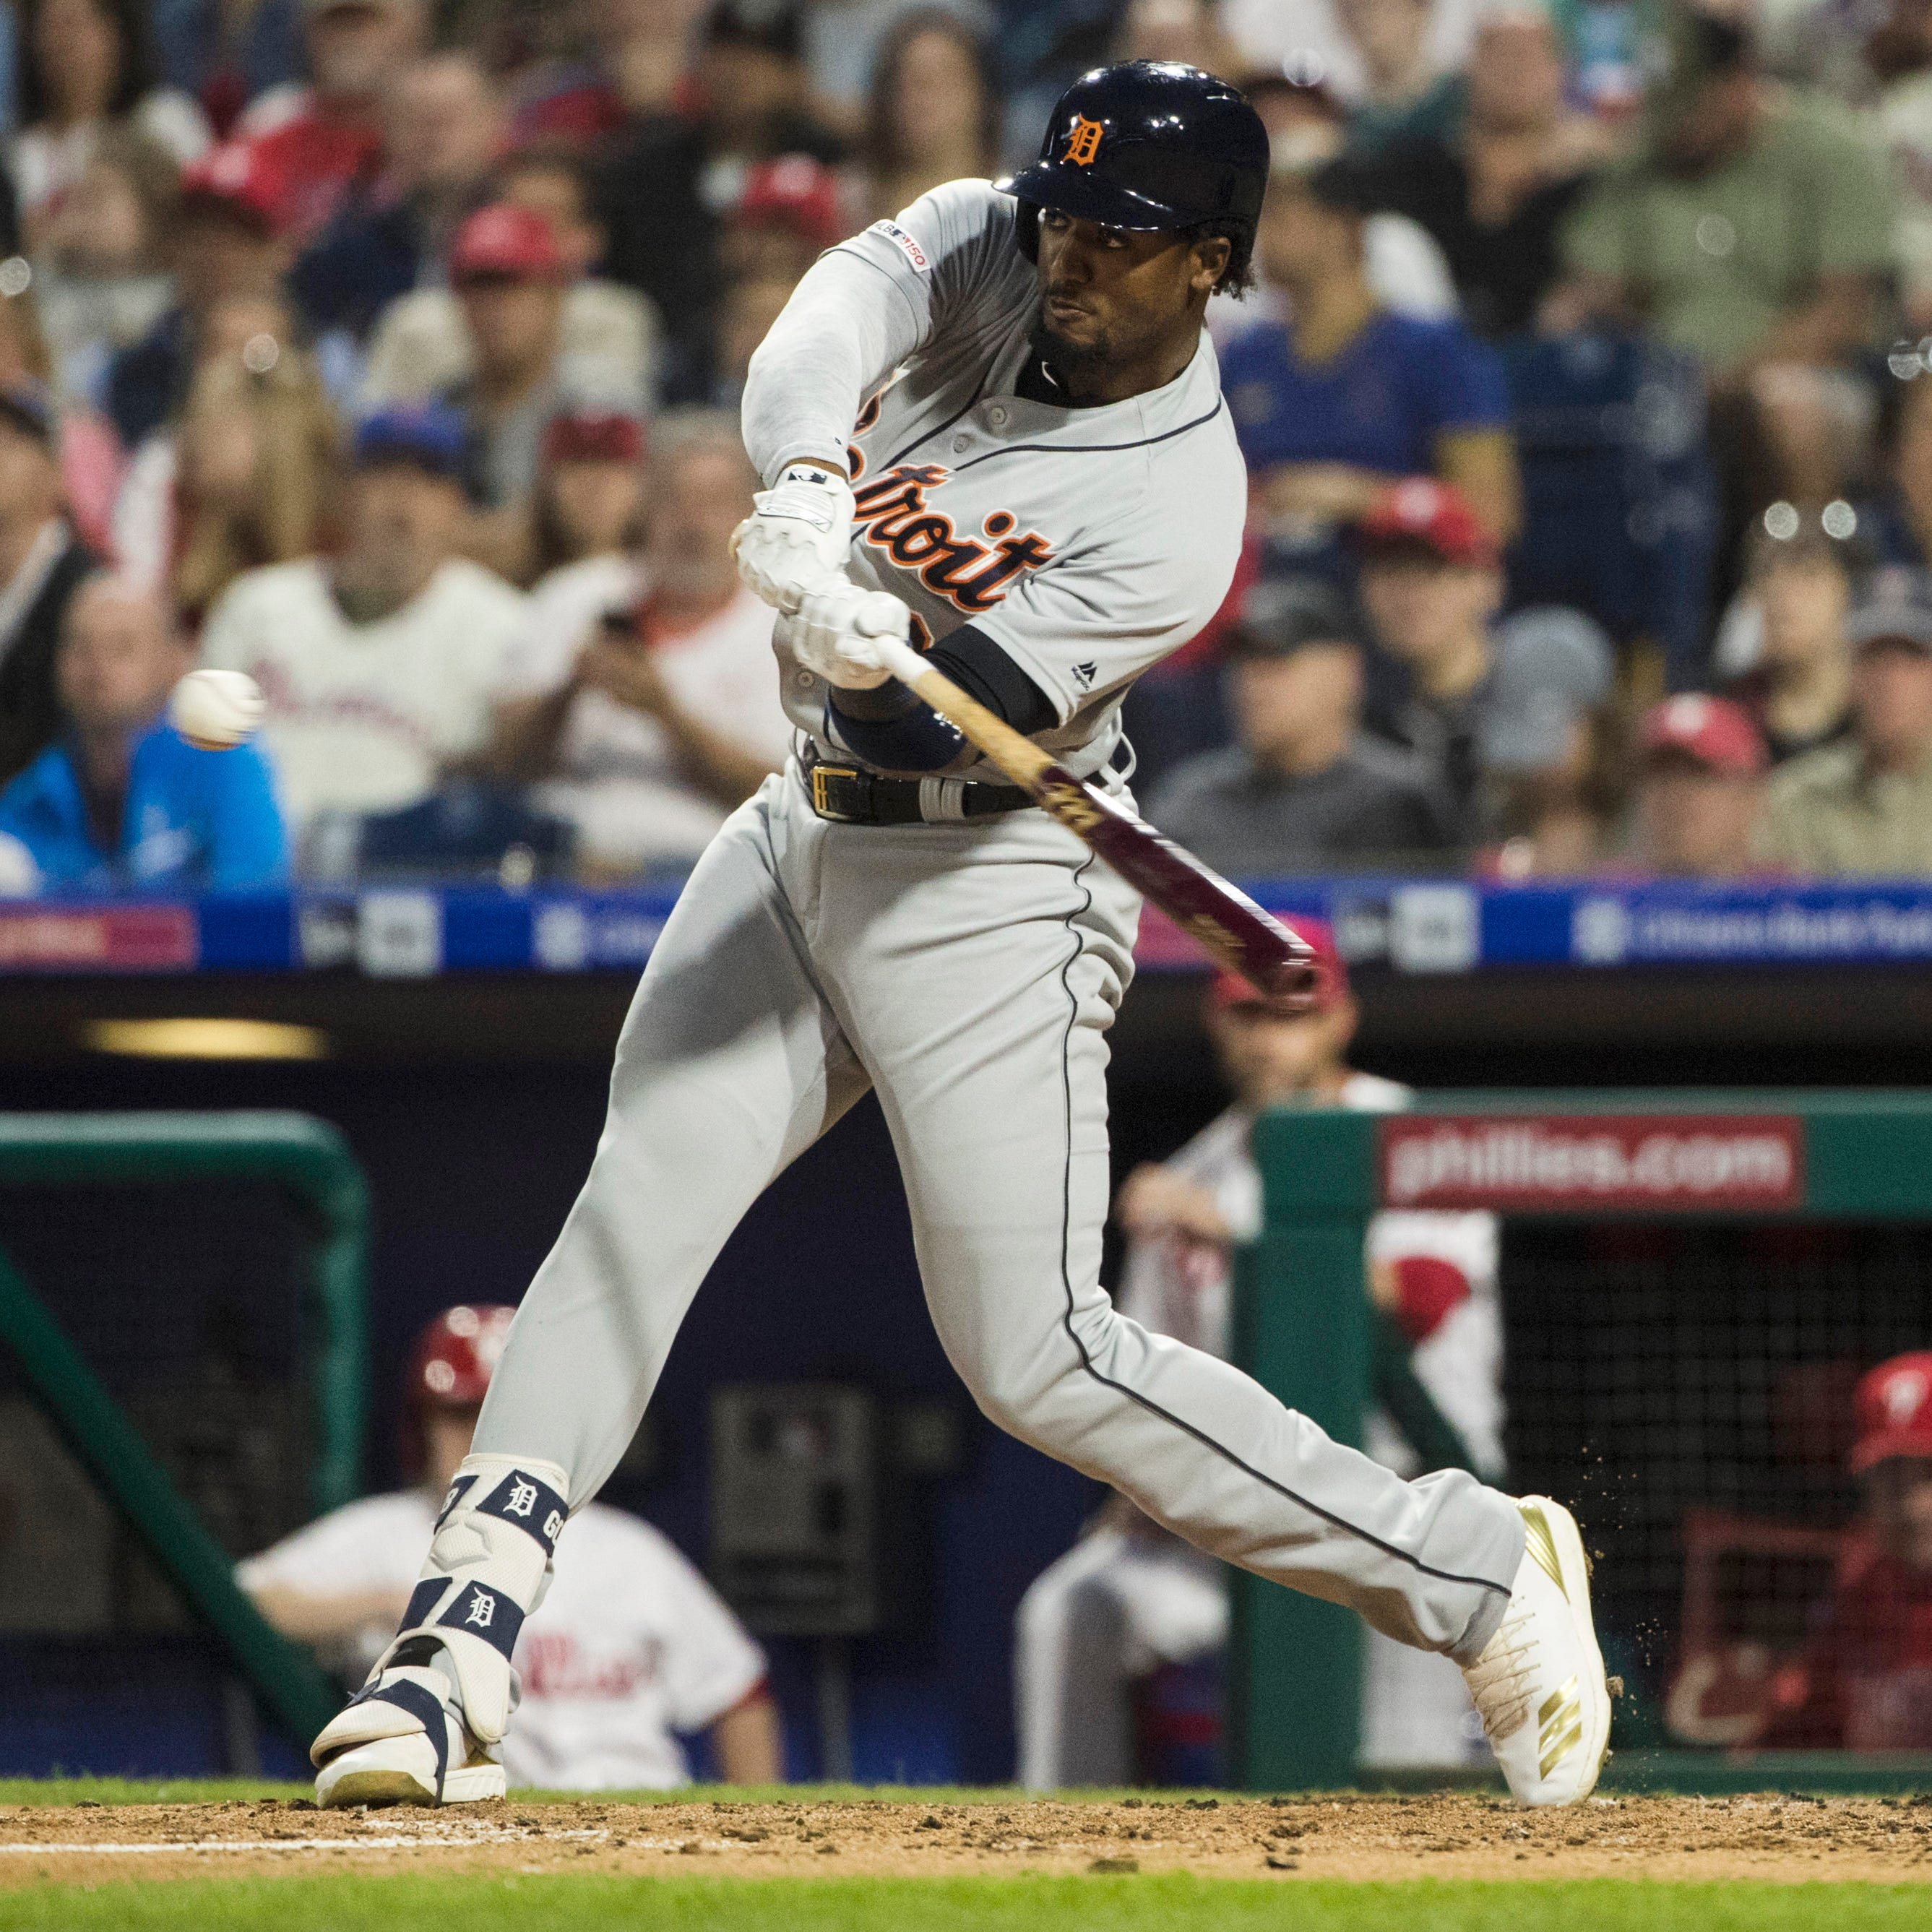 Detroit Tigers score early, bounce back with win vs. Phillies